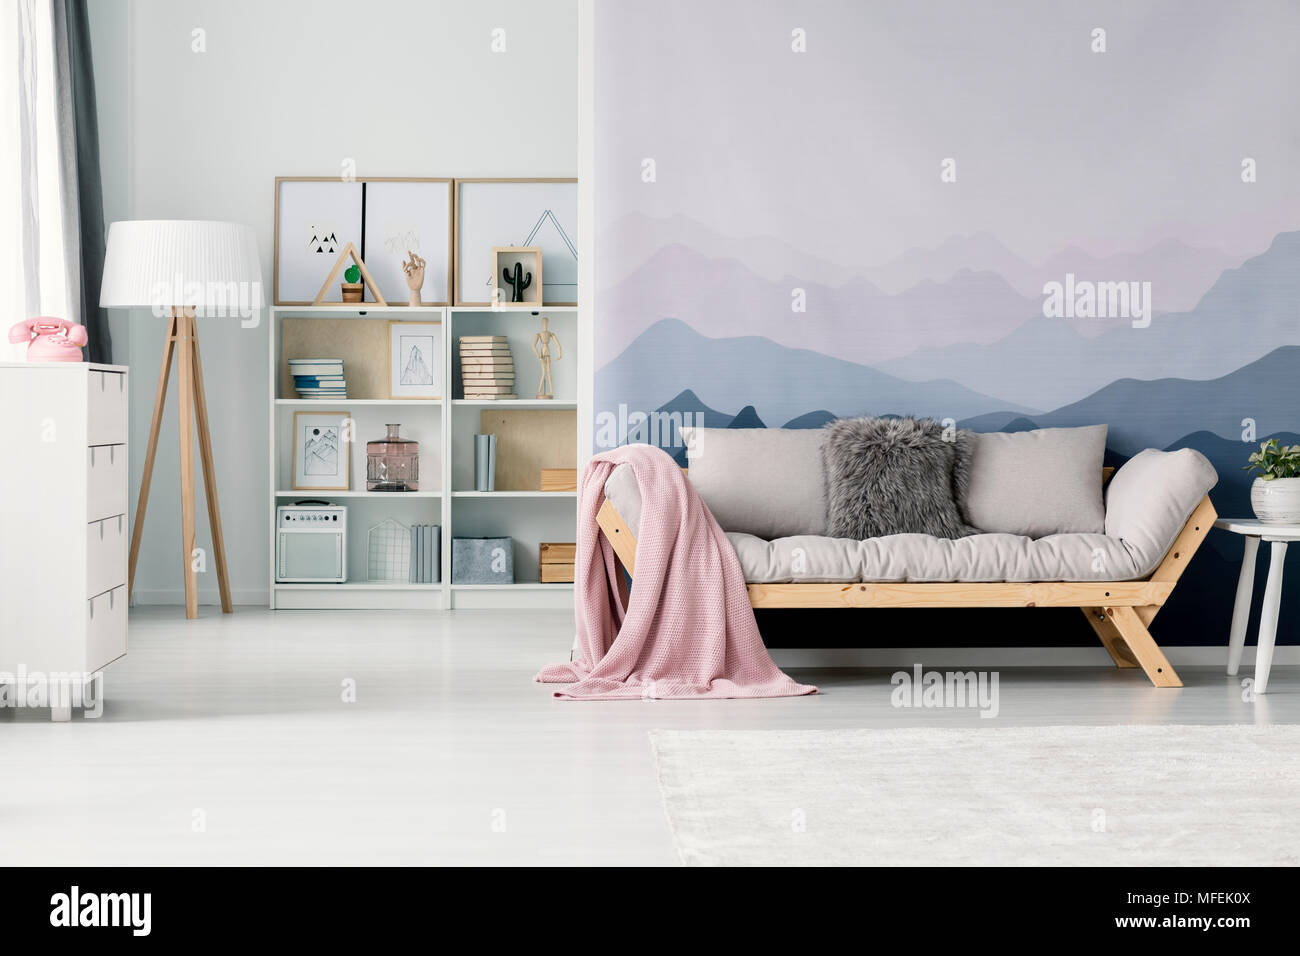 Good Wallpaper Mountain Room - cozy-living-room-interior-with-pastel-pink-blanket-on-a-beige-sofa-standing-against-a-wall-with-mountain-wallpaper-MFEK0X  Picture_391613.jpg